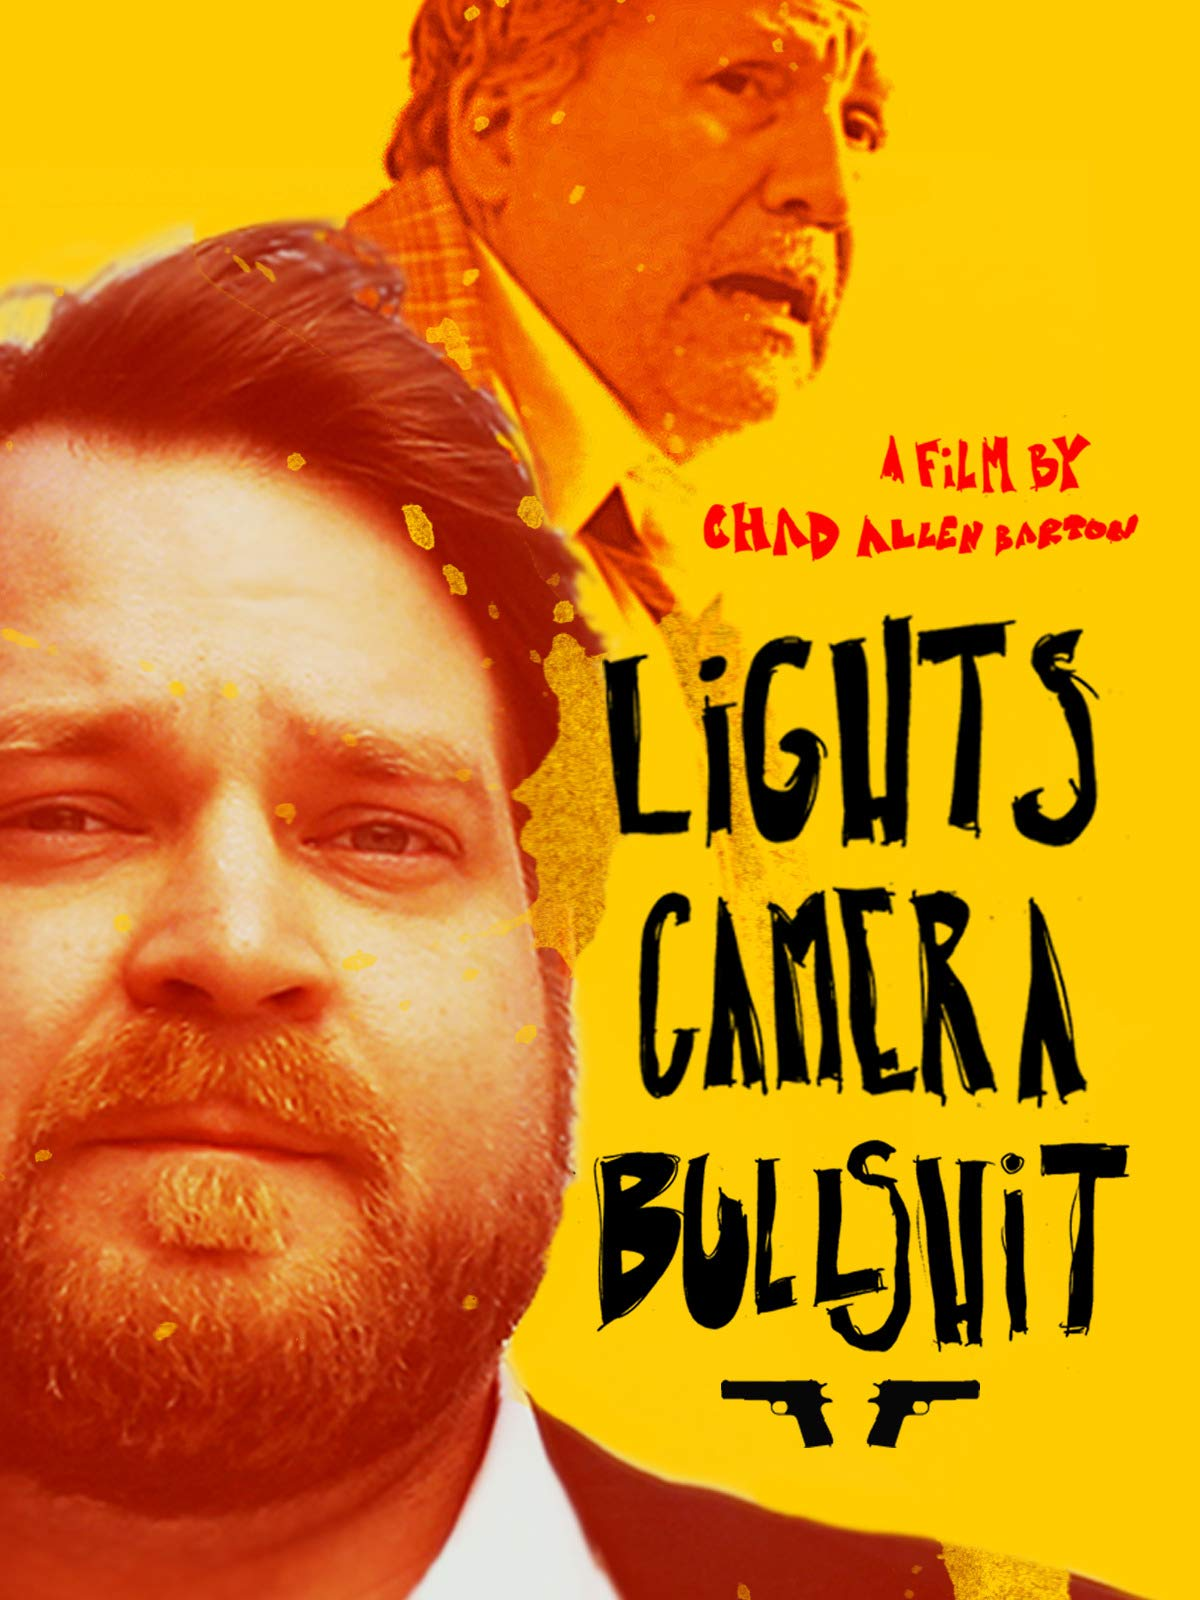 Lights Camera Bullshit